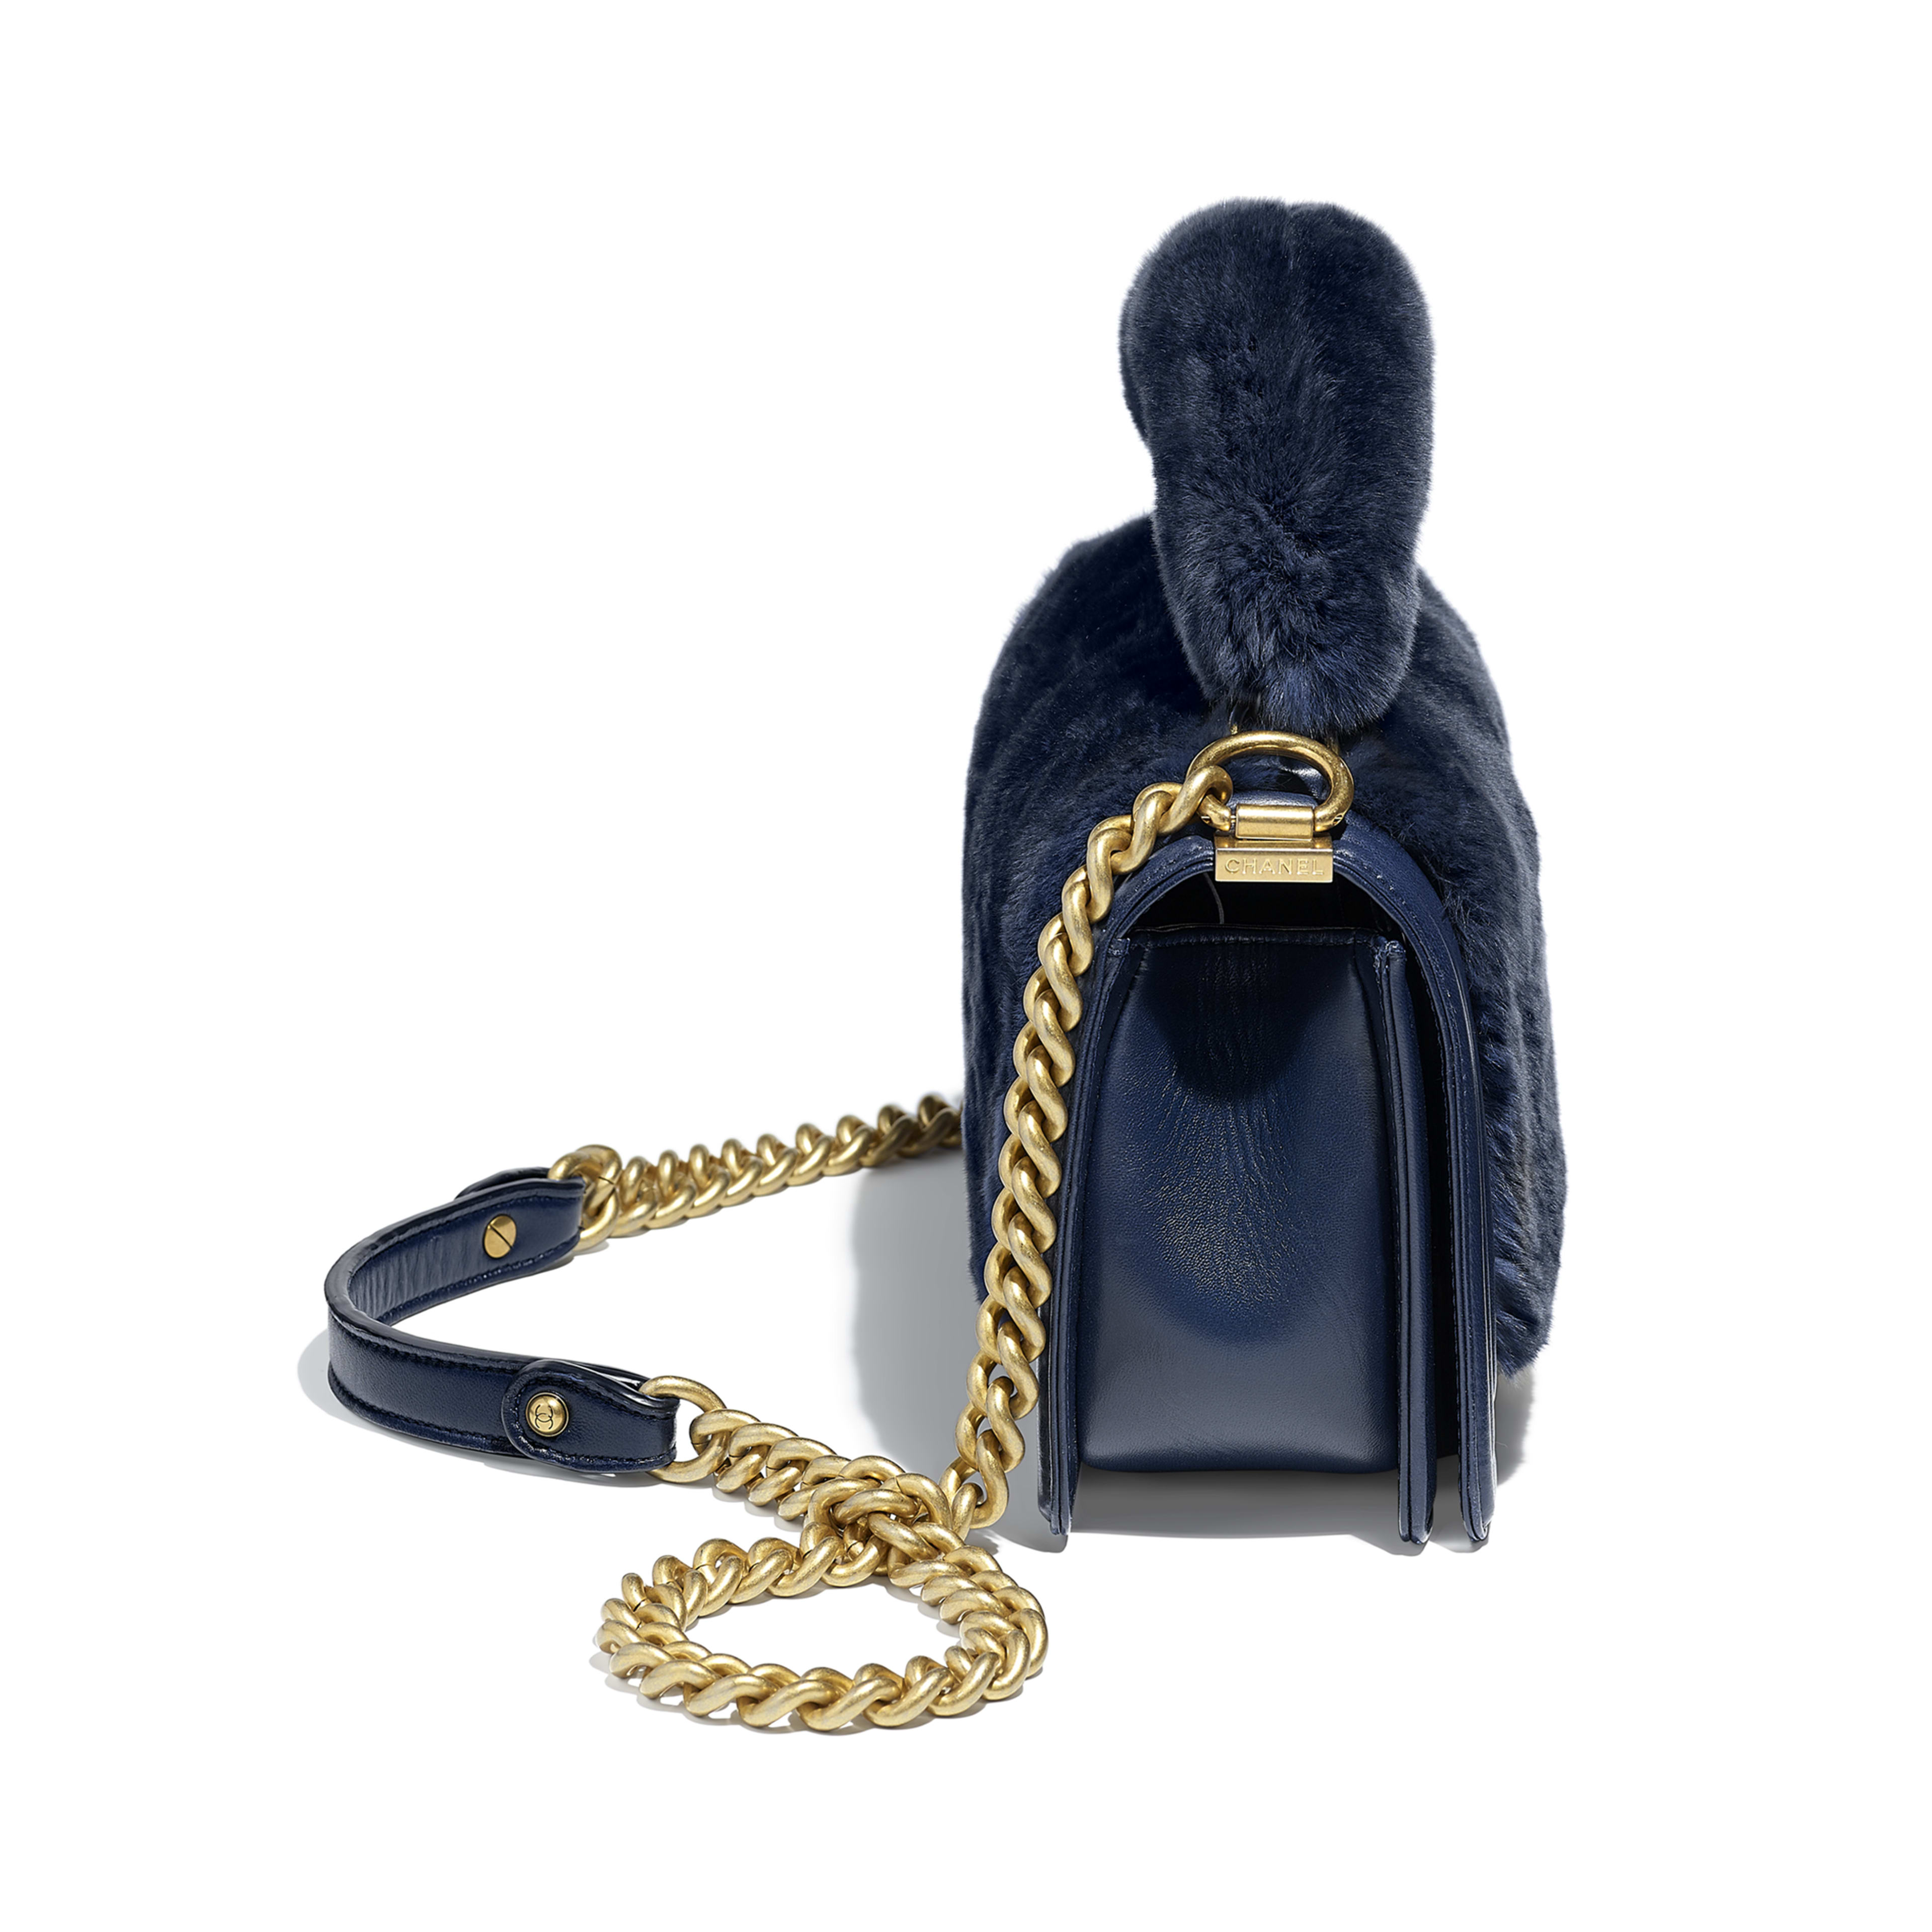 BOY CHANEL Flap Bag with Handle Orylag, Calfskin & Gold-Tone Metal Navy Blue -                                            view 3 - see full sized version